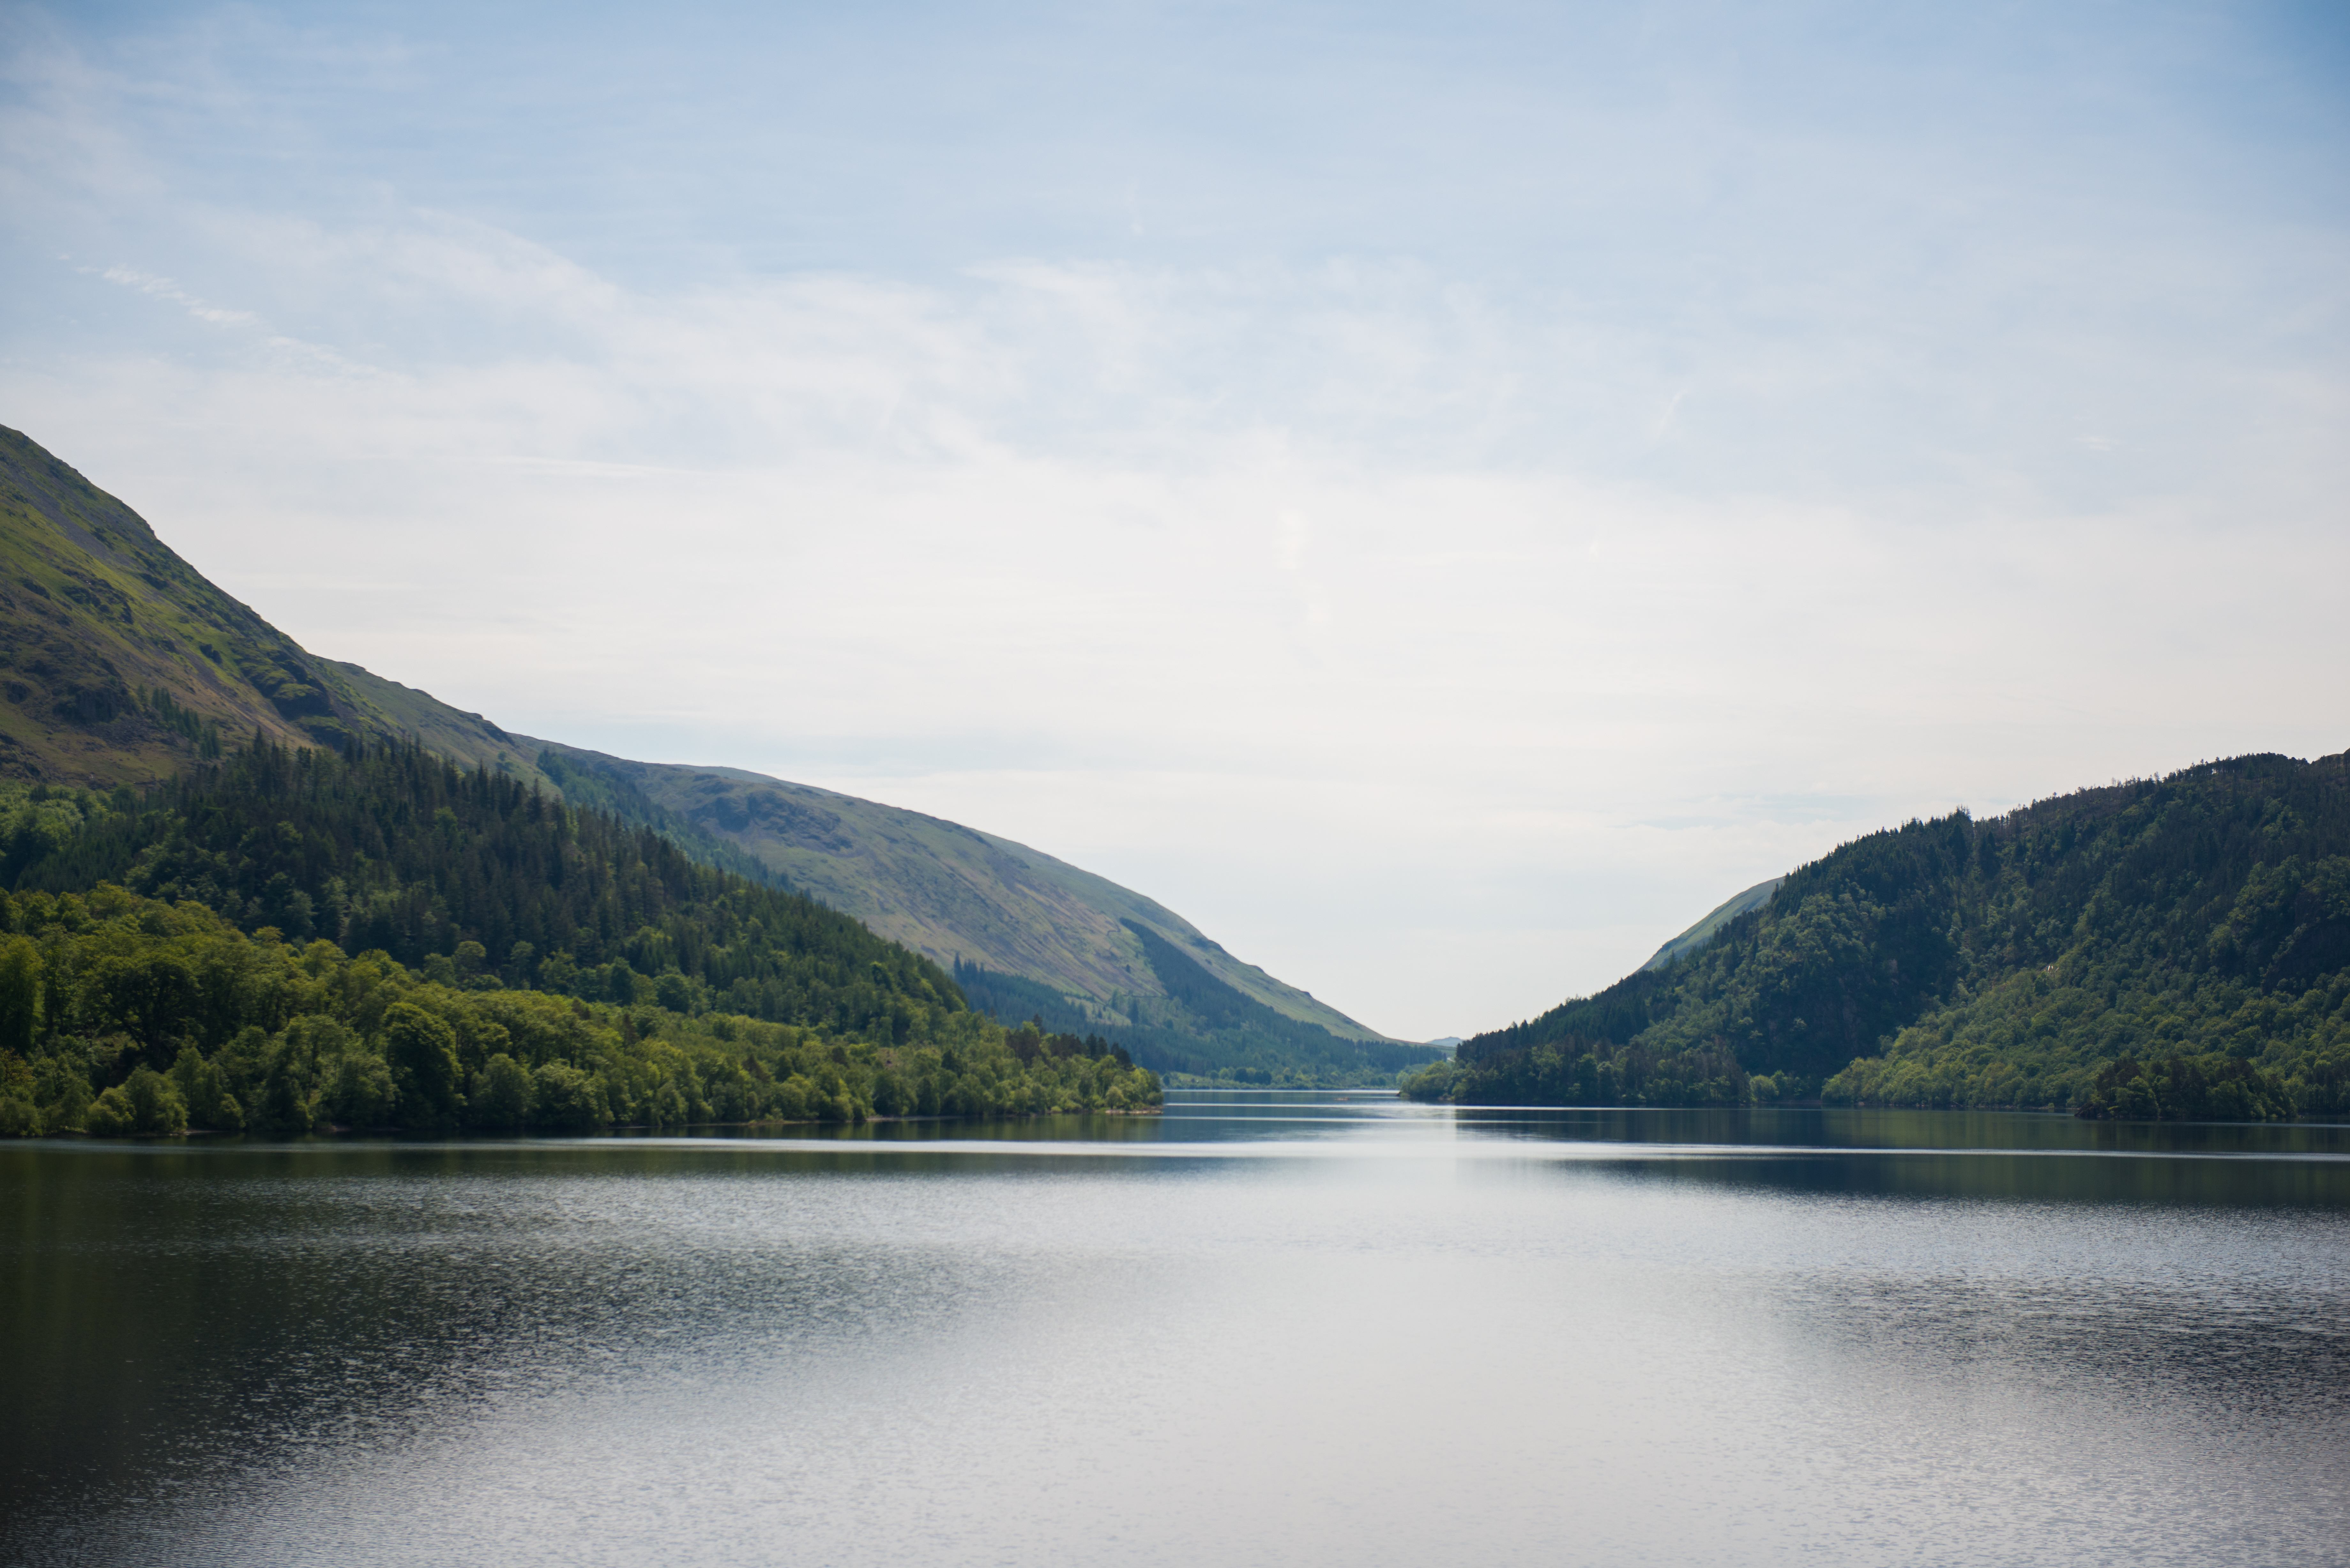 Thirlmere, the Lake District National Park - location for Star Wars scenes